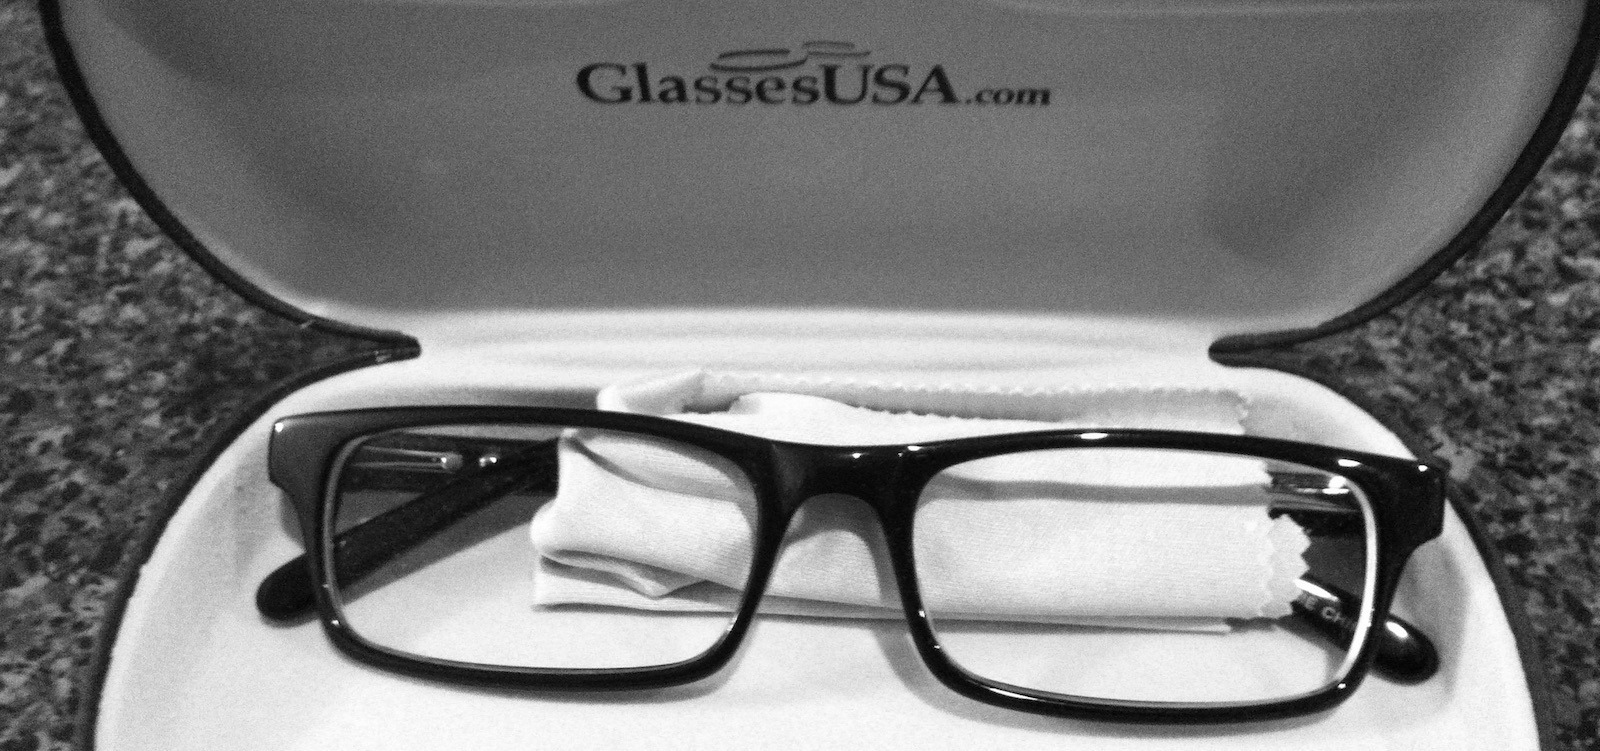 3522f8556b GlassesUSA.com Online Prescription Glasses Retailer - Man-Made Reviews